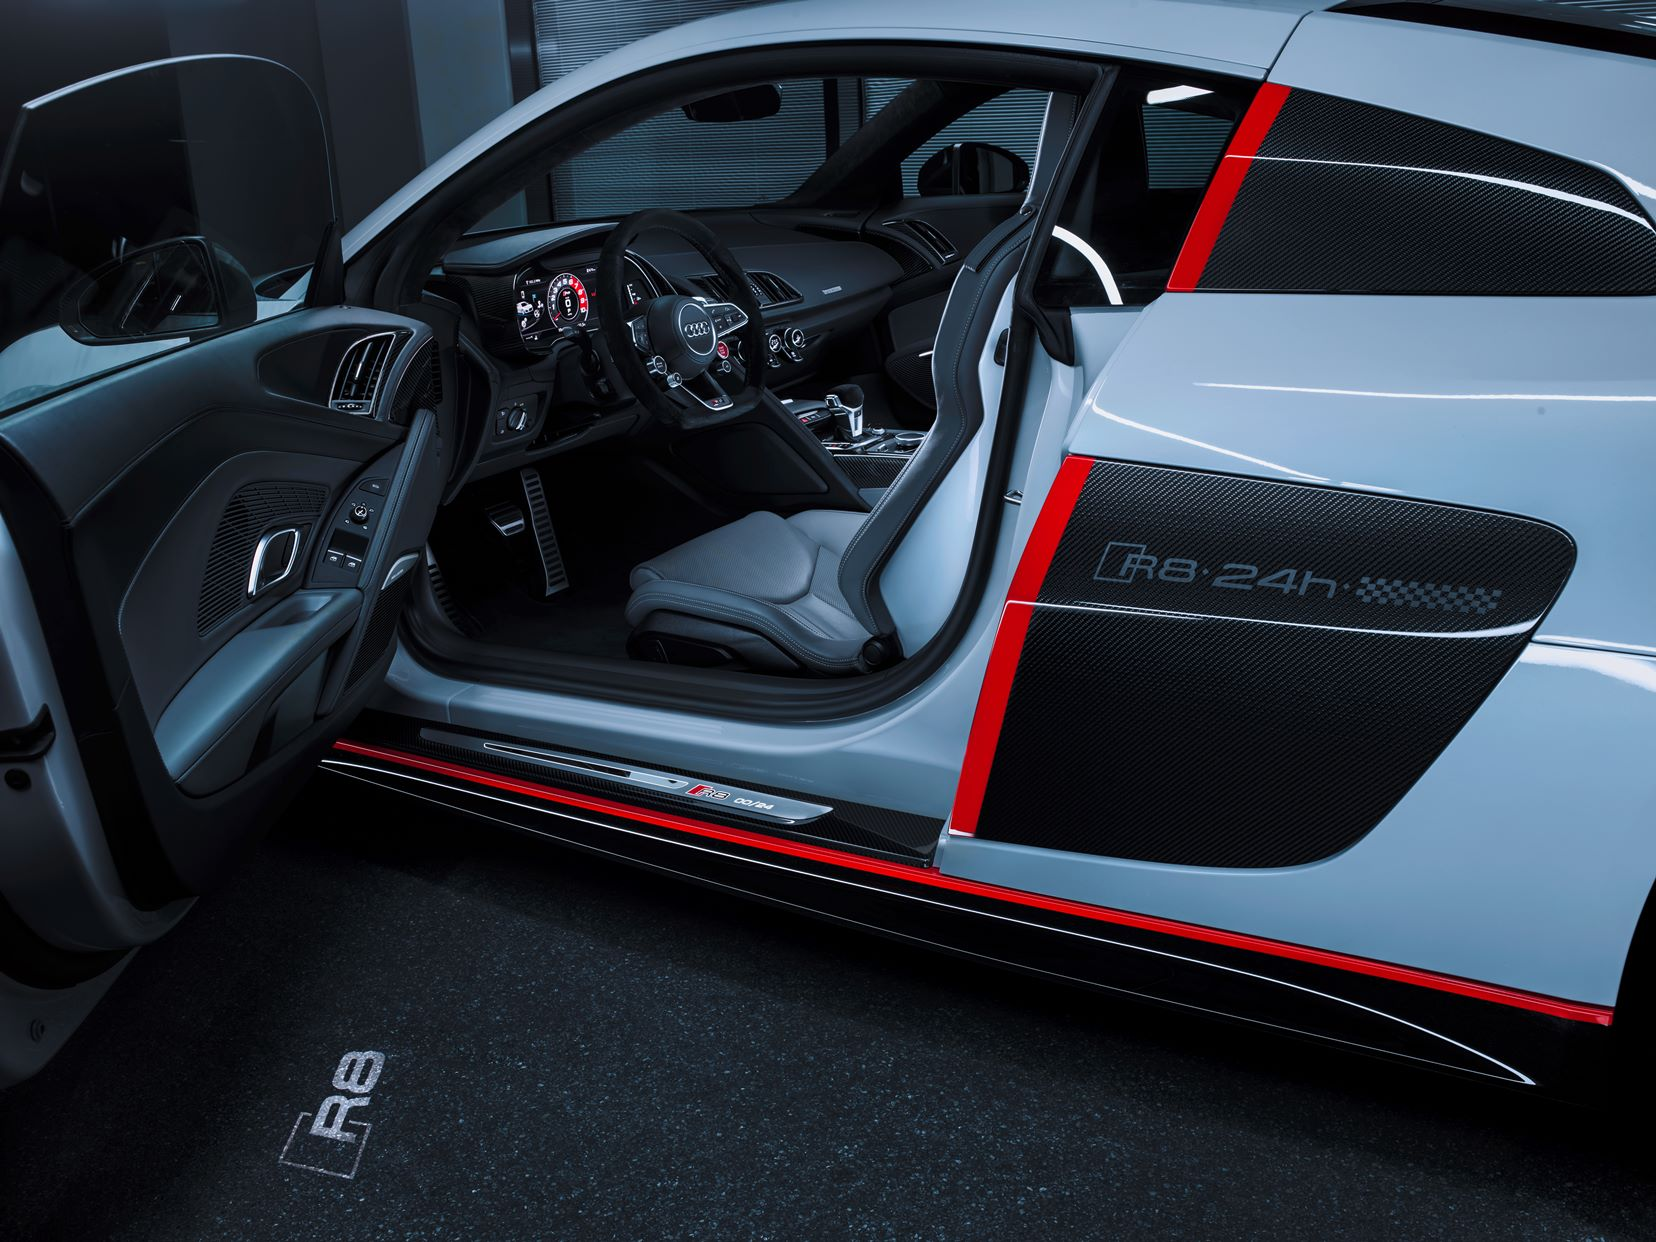 Audi R8 V10 selection 24h - 2016 - inside - photo showroom